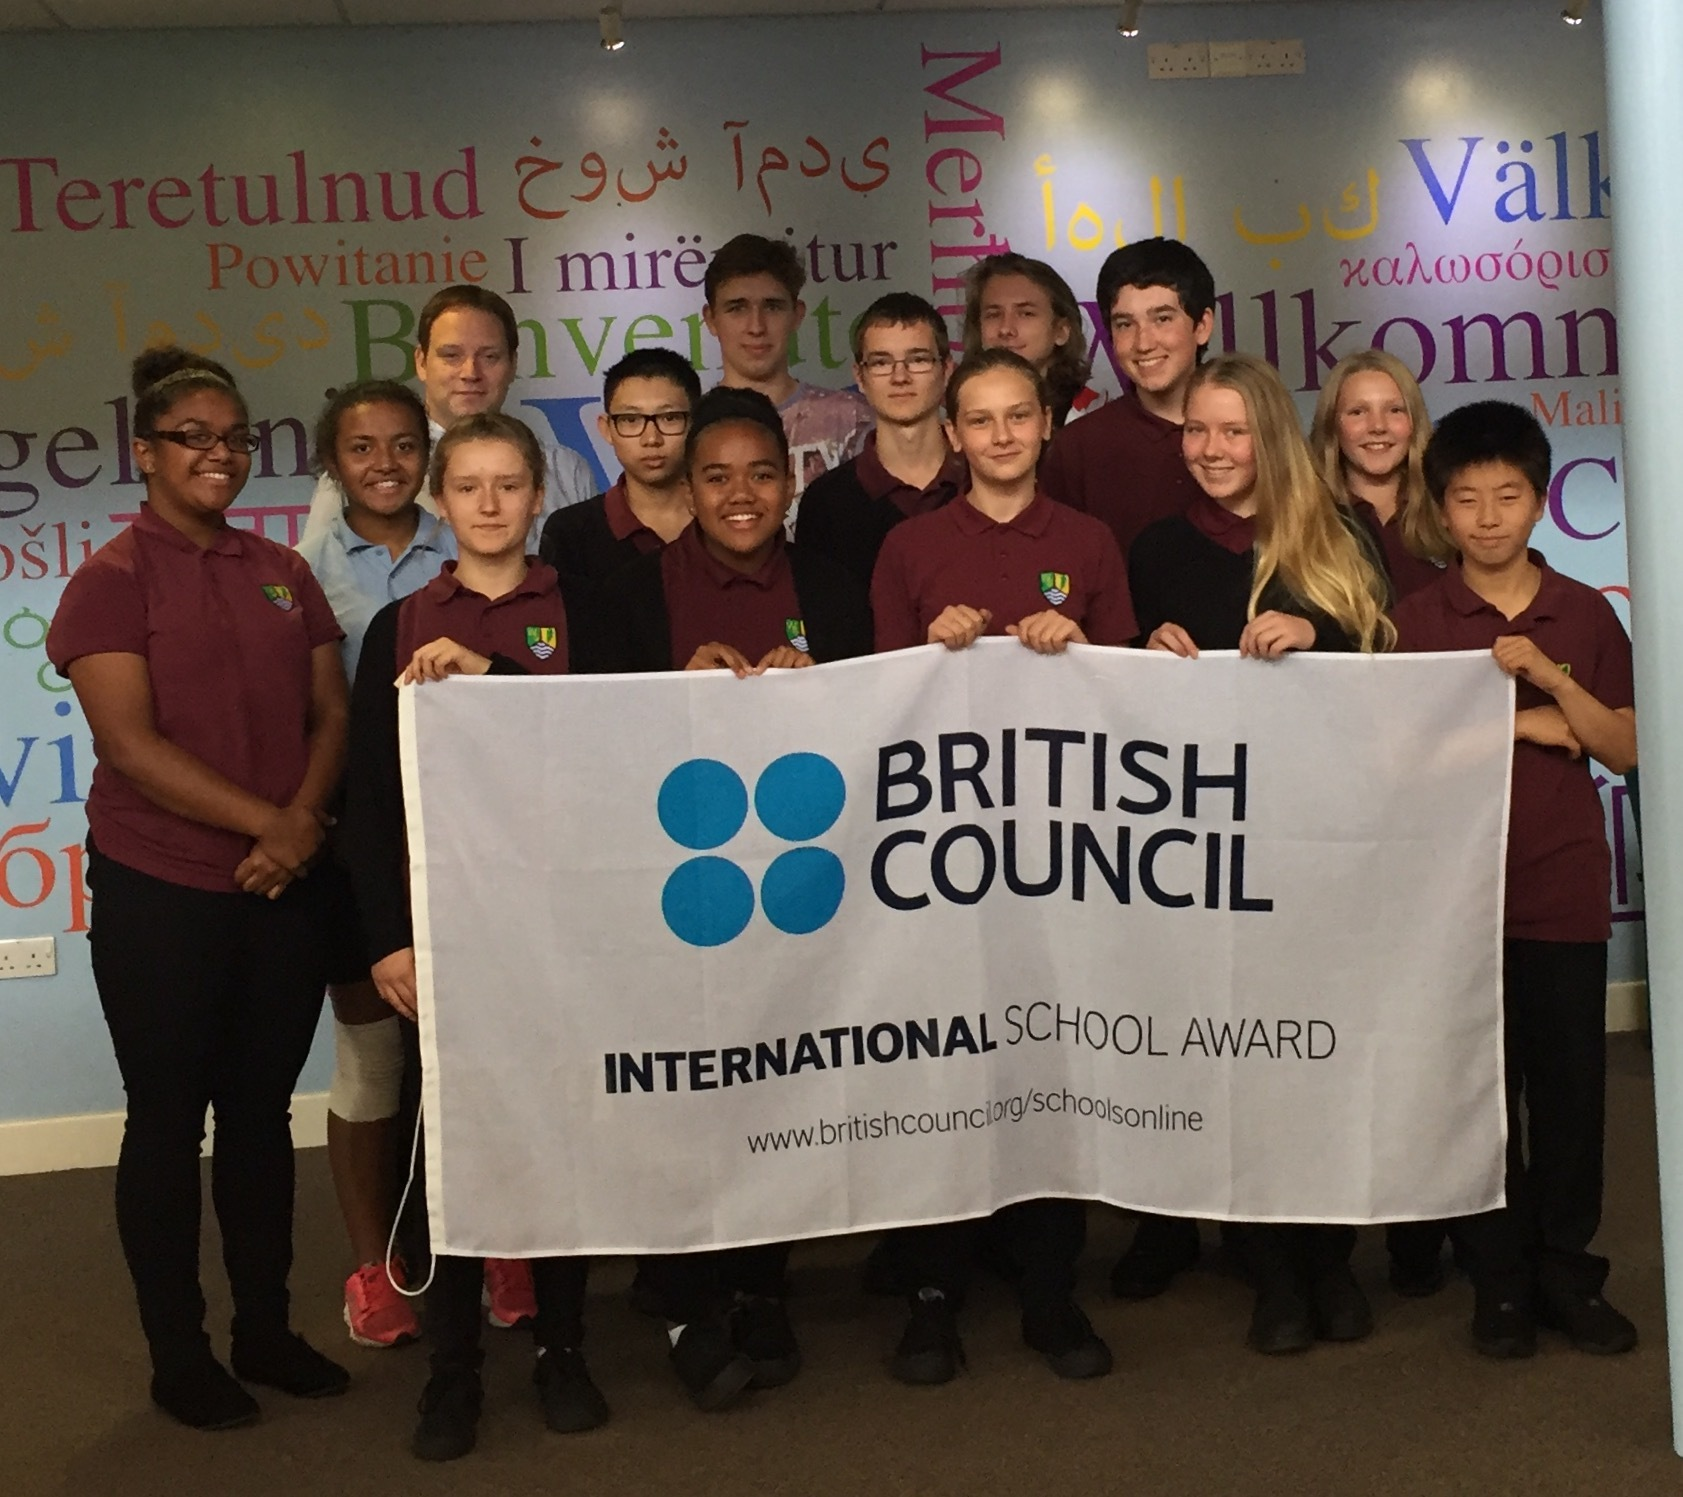 WINNERS: Head teacher of the school Rob Ford pictured with students and the British Council International School Award Flag